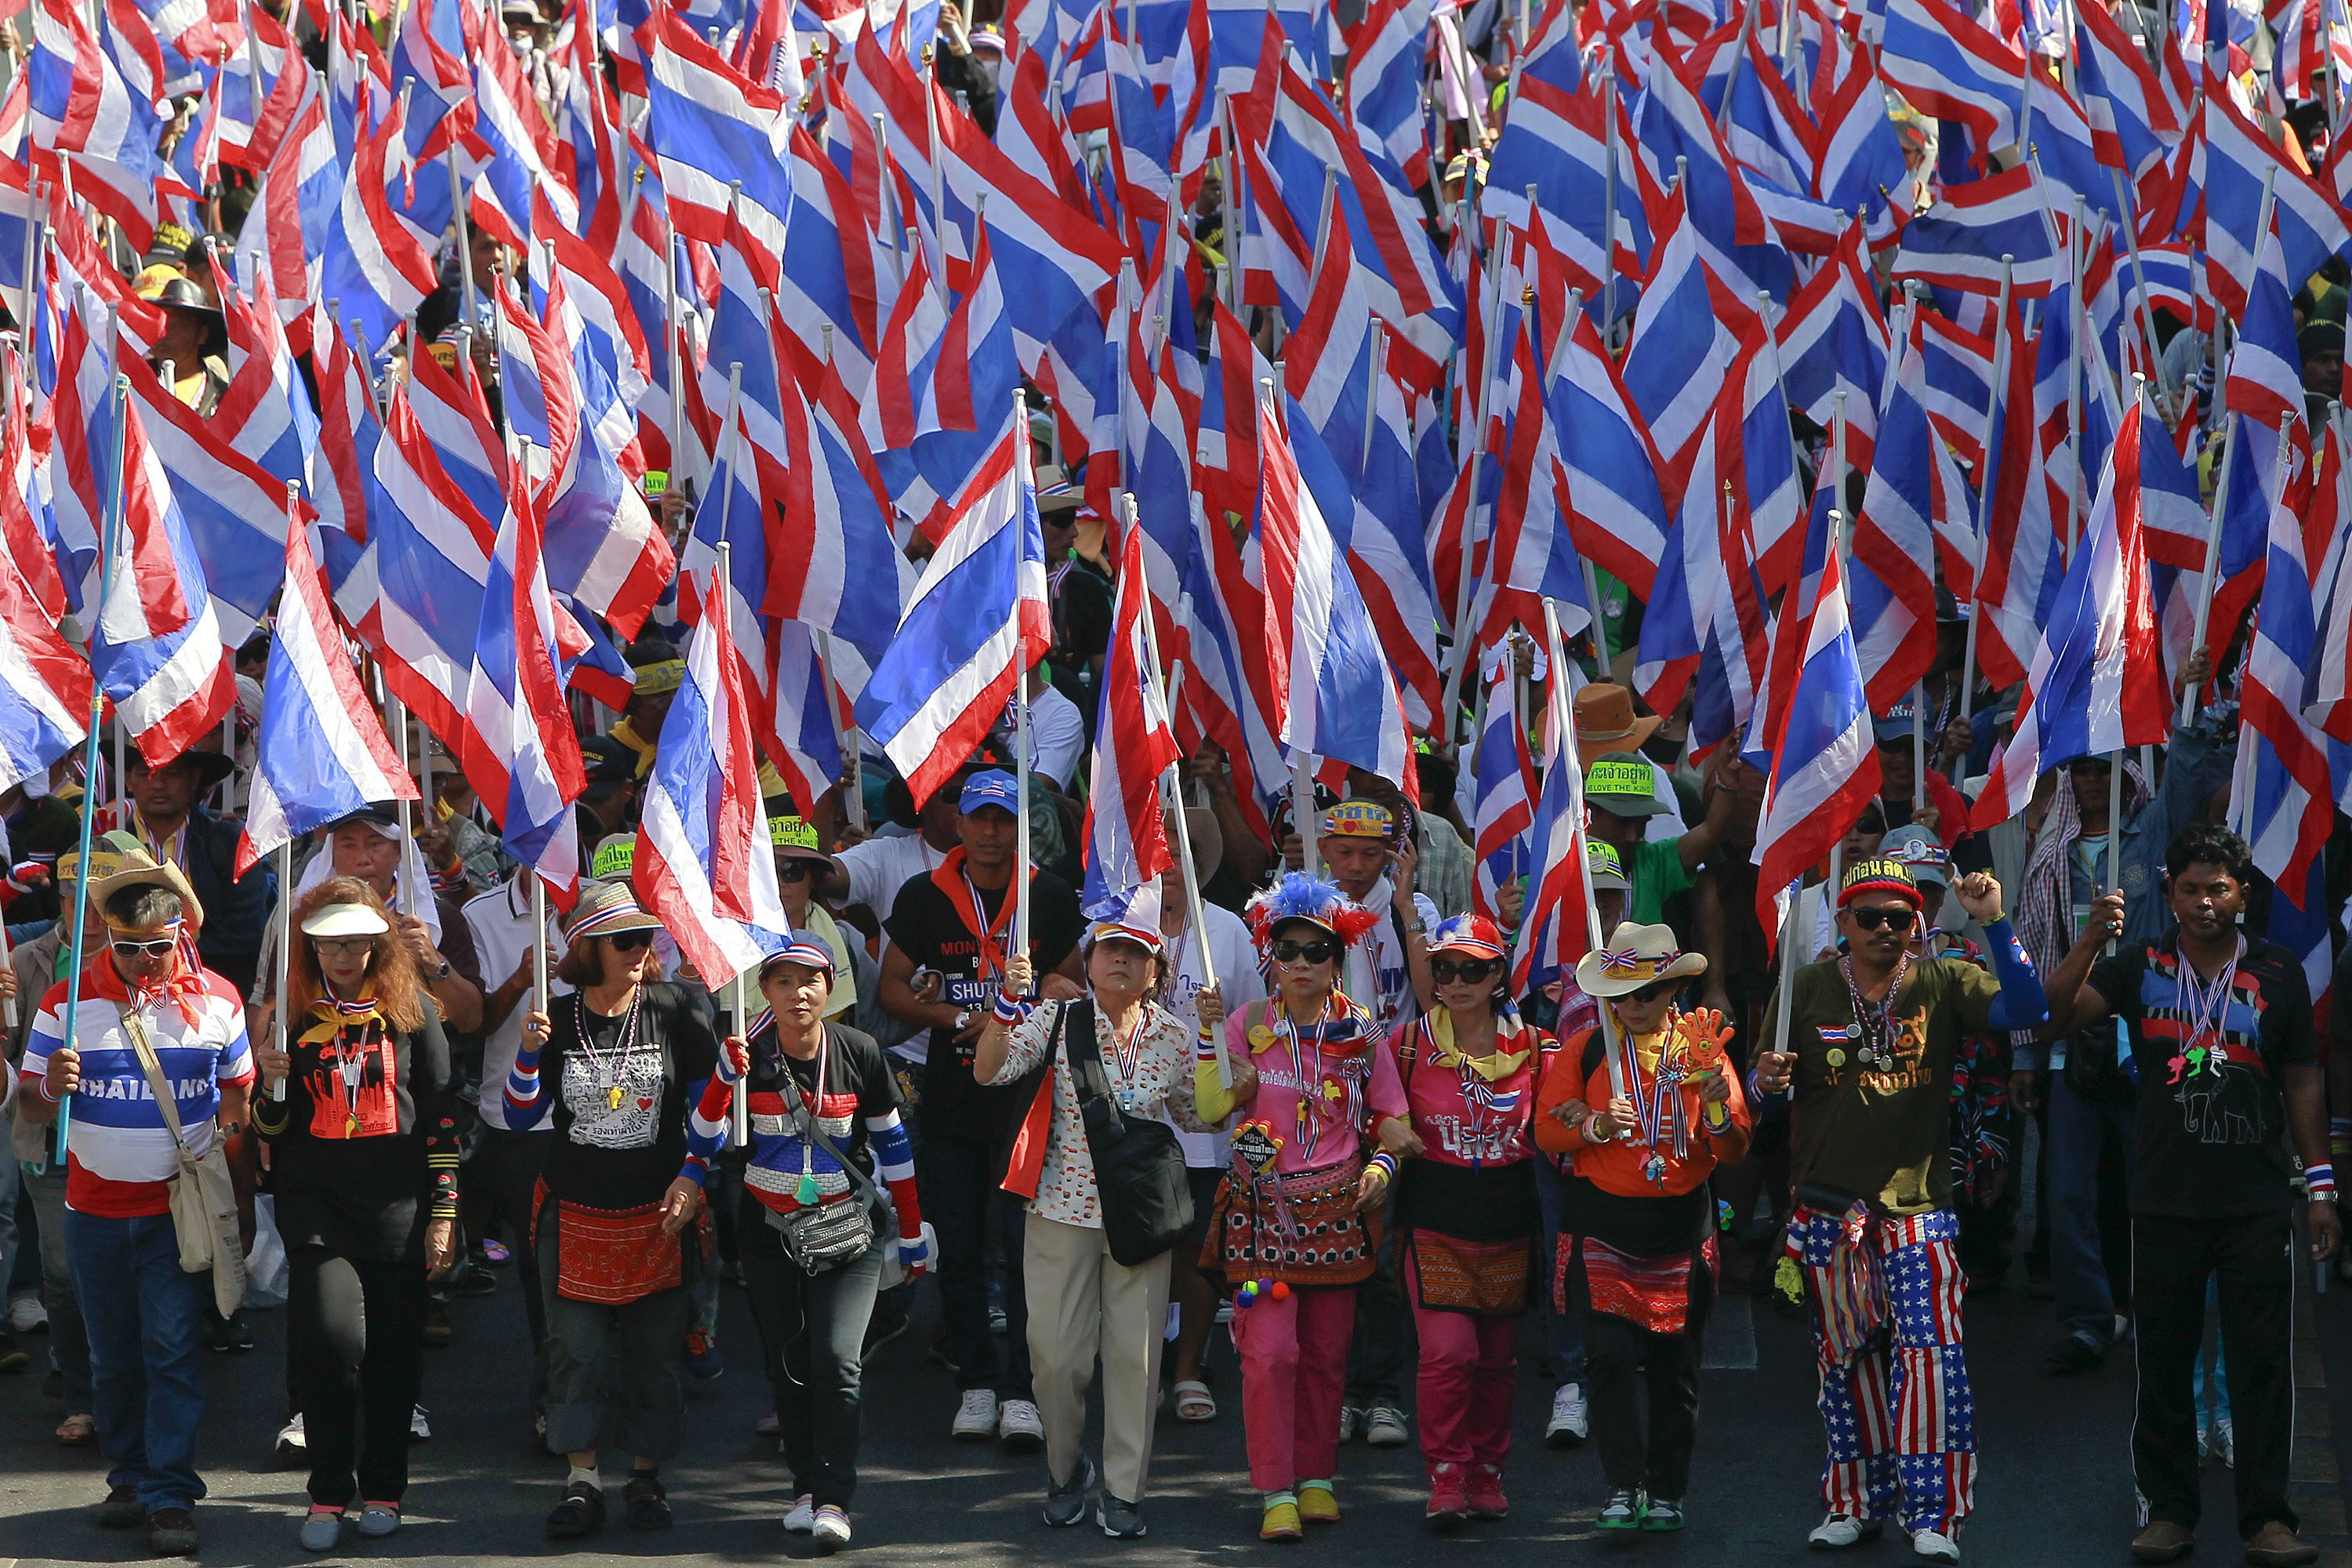 Anti-government protesters carry national flags as they march though central Bangkok January 14, 2014. Protesters trying to topple Thailand's government moved to tighten the blockade around ministries and other state bodies on Tuesday and a hardline faction threatened to storm the stock exchange, while major intersections in the capital Bangkok remained blocked. REUTERS/Chaiwat Subprasom (THAILAND - Tags: CIVIL UNREST POLITICS) - RTX17DH3